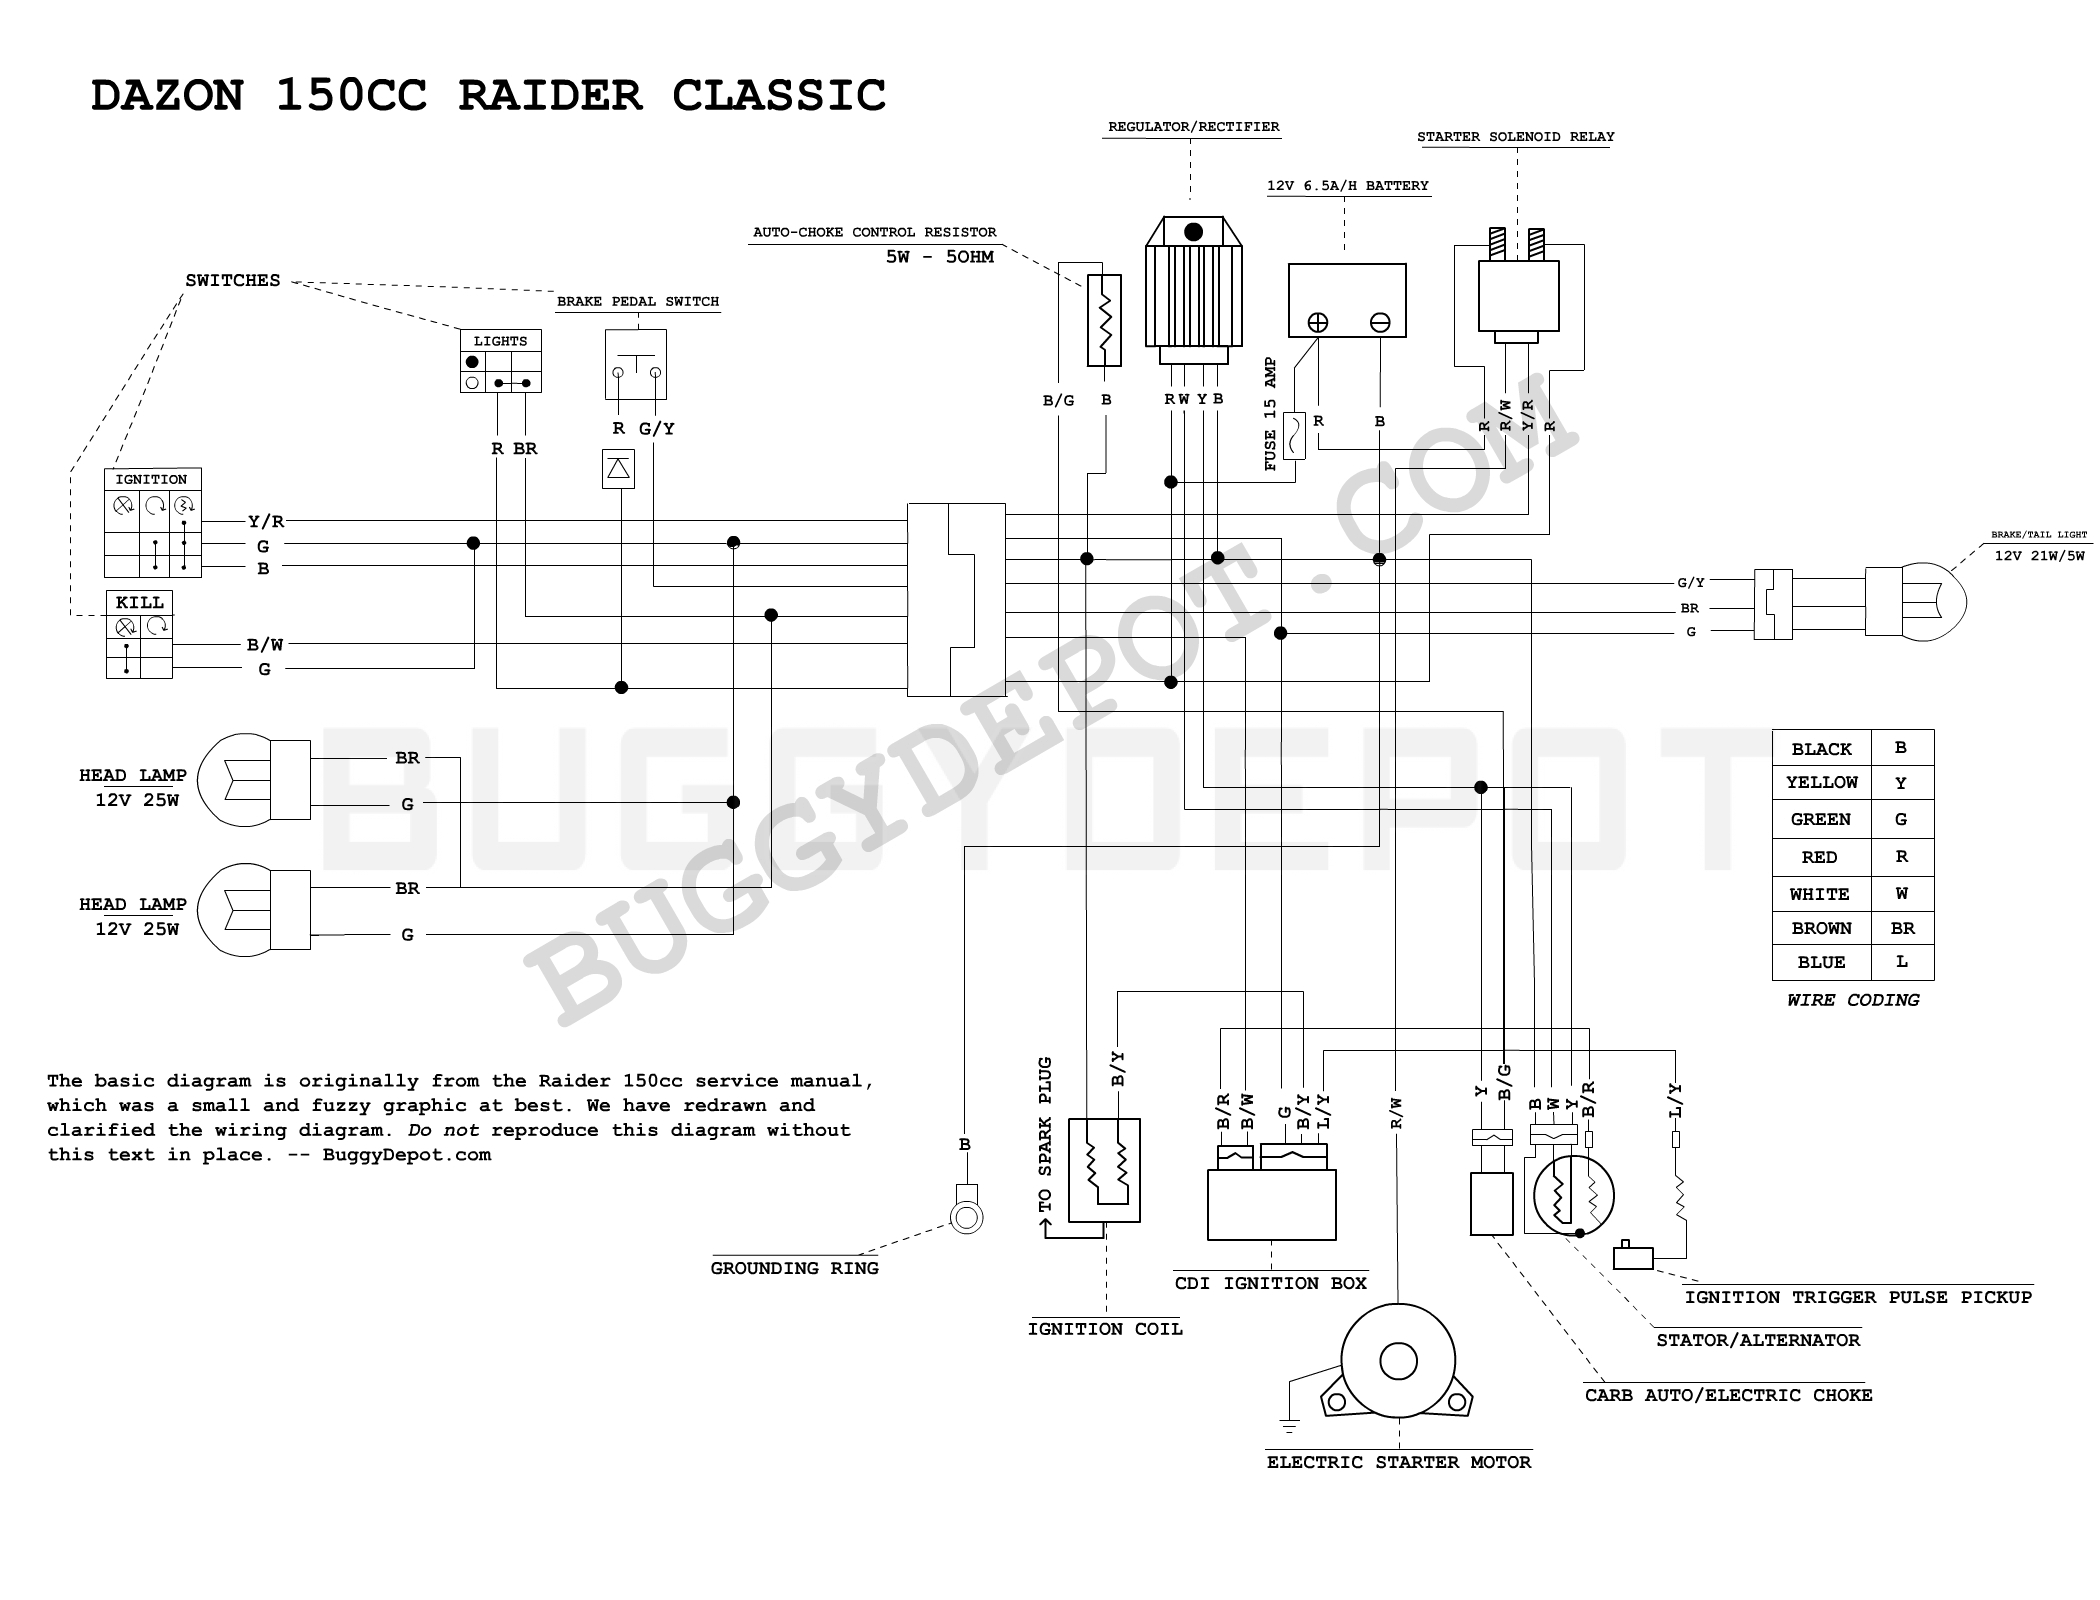 2003 big dog wiring diagram electrical wiring diagram house u2022 rh universalservices co 2003 big dog wiring diagram 2003 big dog wiring diagram